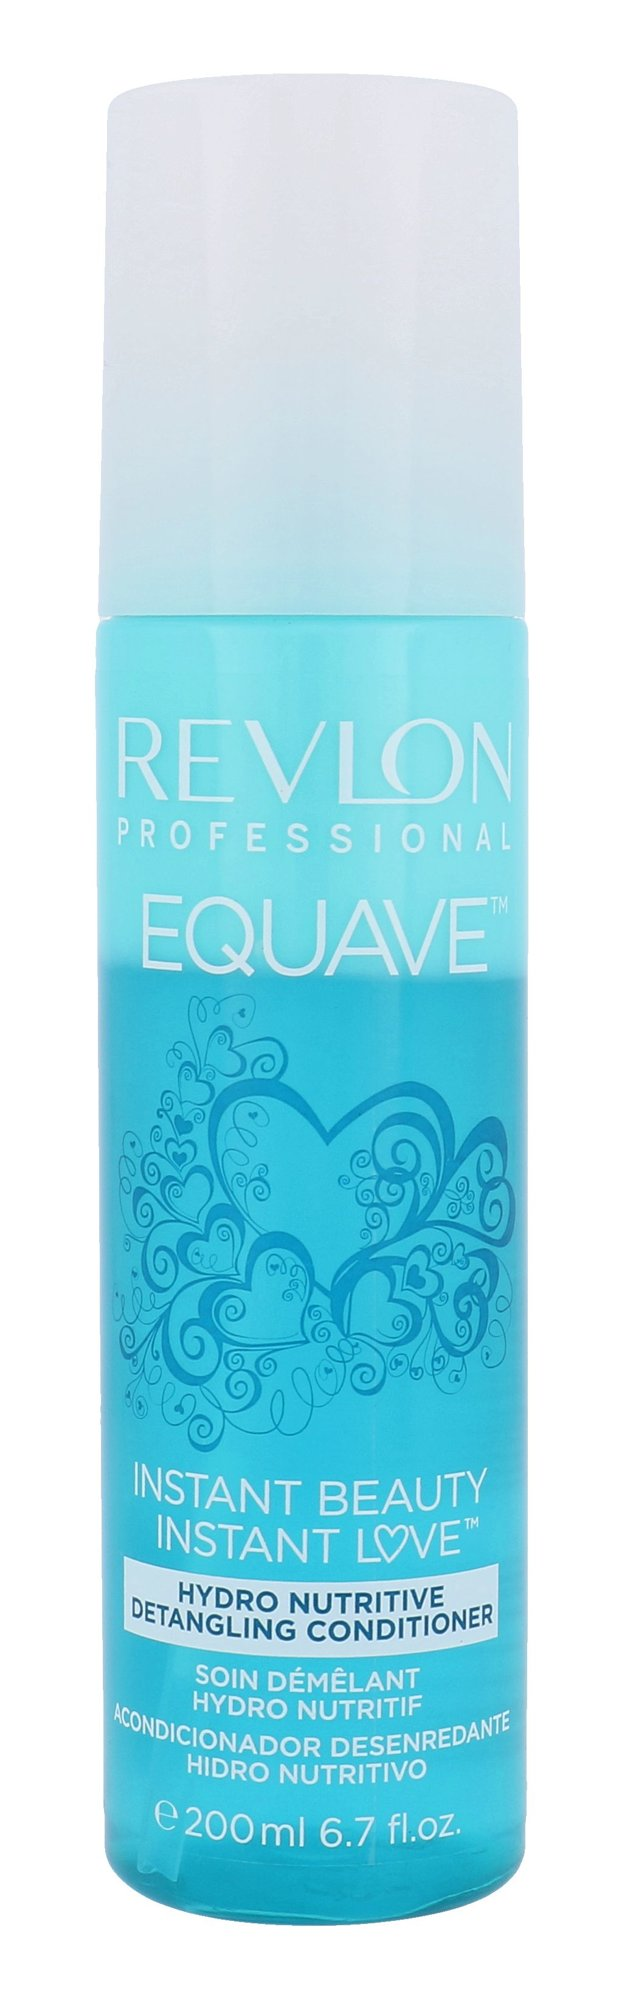 Revlon Professional Equave Cosmetic 200ml